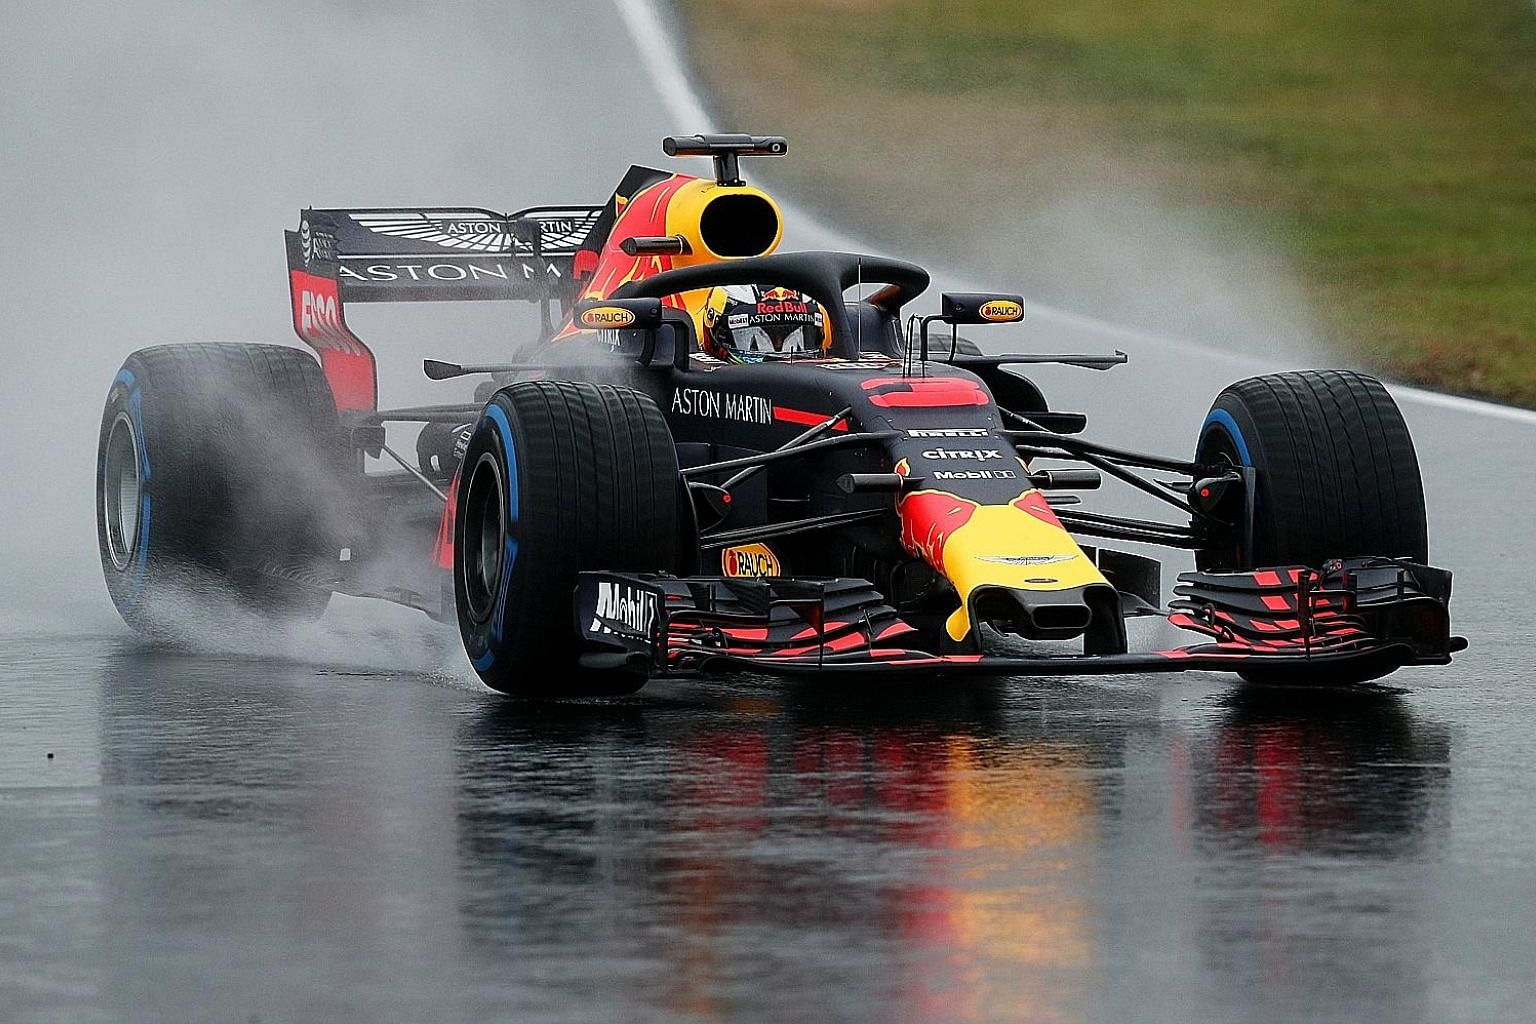 Red Bull's Daniel Ricciardo during testing in Barcelona last month. The Australian, who won once last year, in Azerbaijan, is tipped to give Mercedes a run for their money this year.